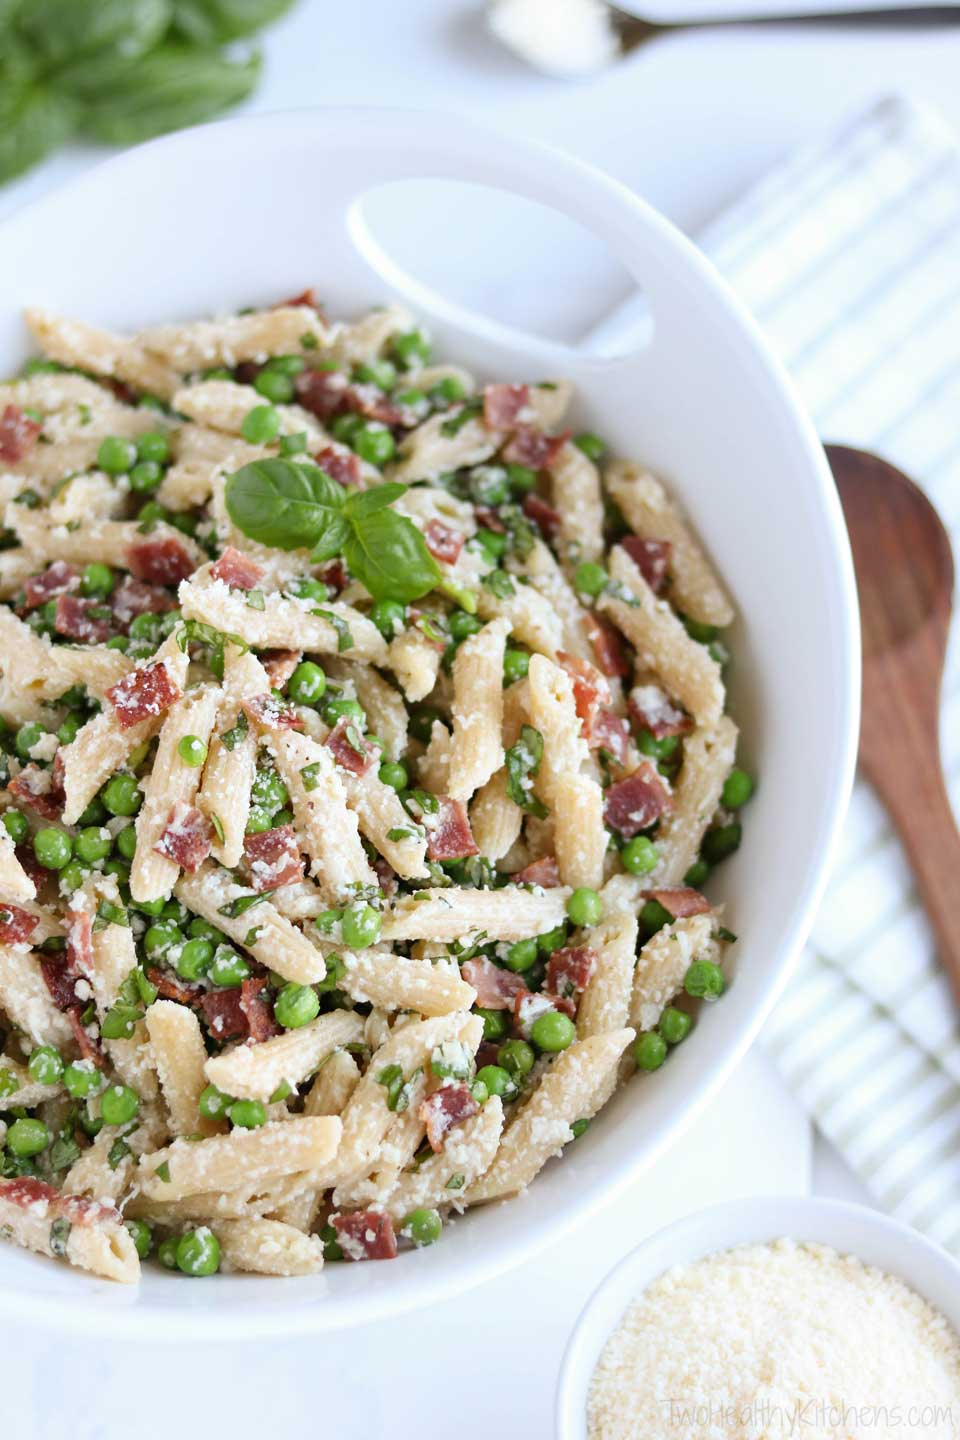 Our healthy Pasta with Peas and Bacon comes together in just minutes! It's on the table in under 30 minutes, and bursting with delicious, satisfying flavors your whole family will love!